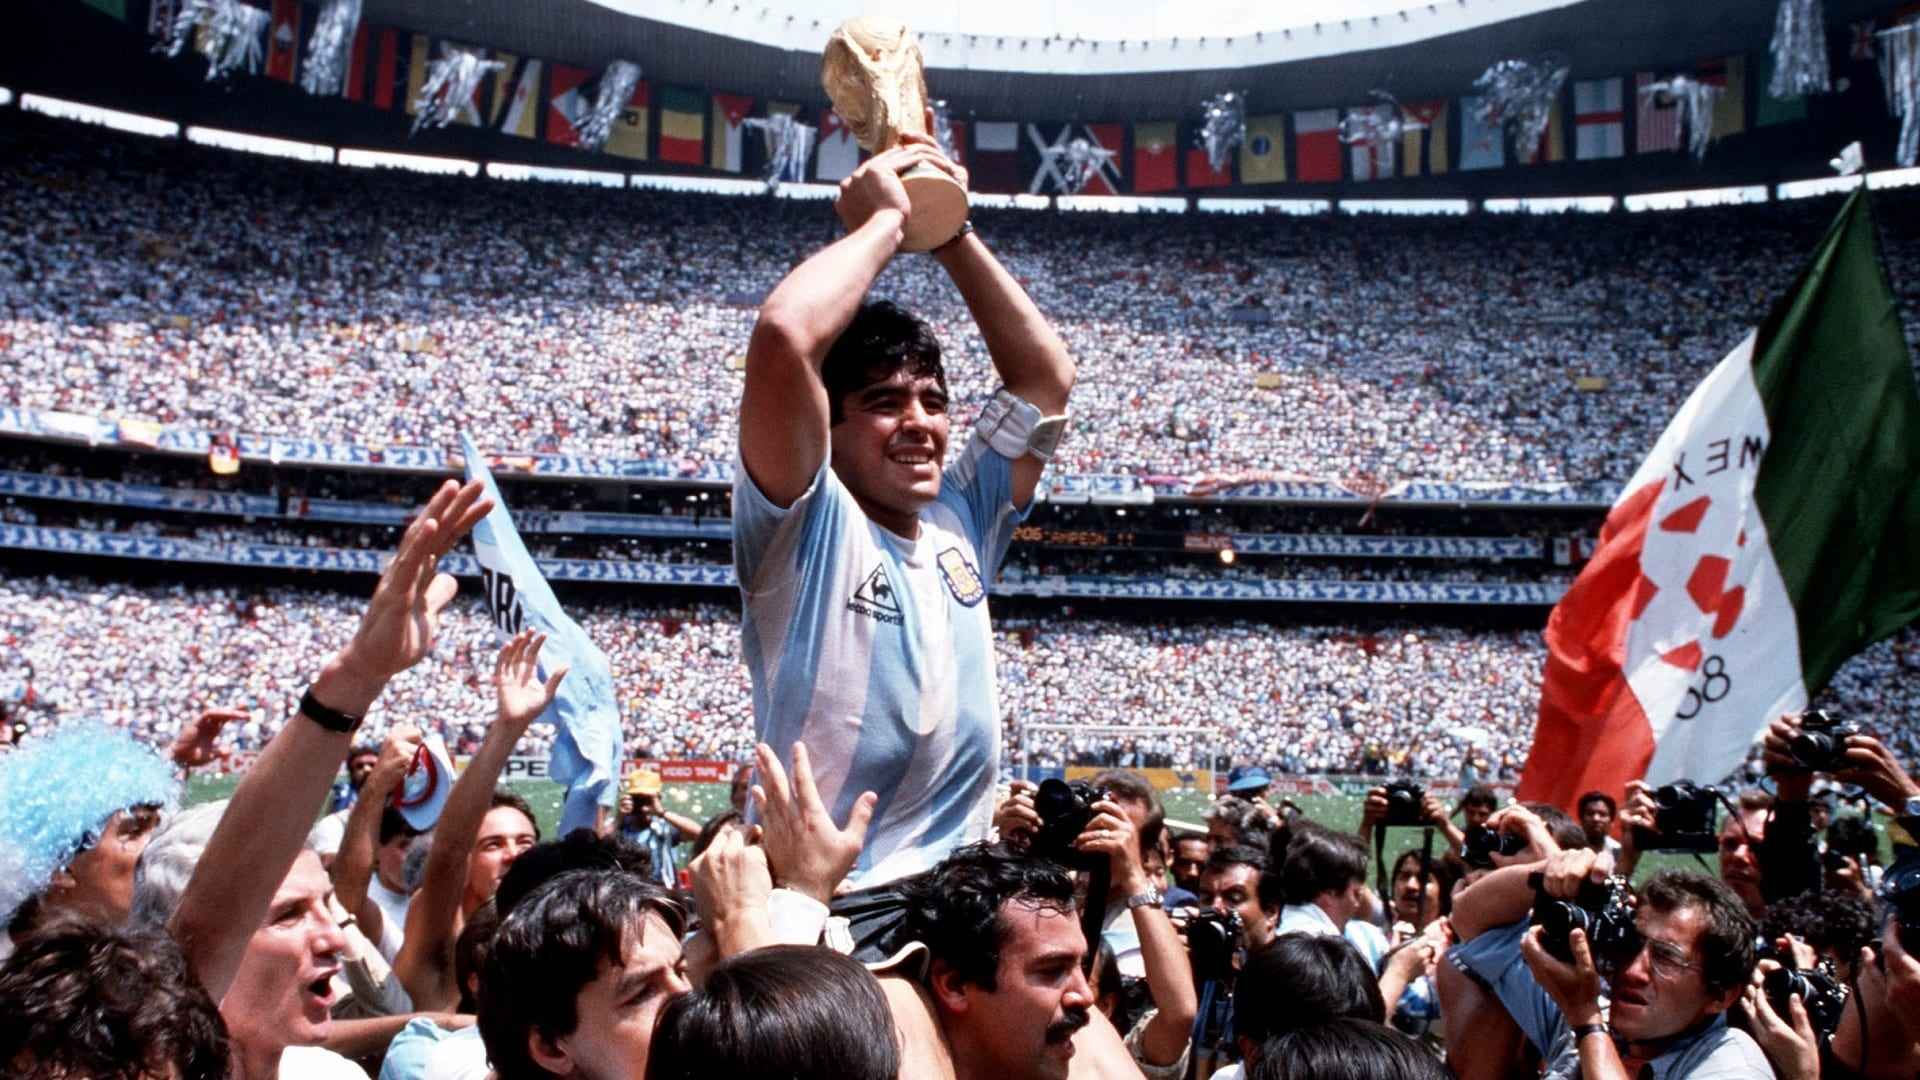 maradona, national geographic